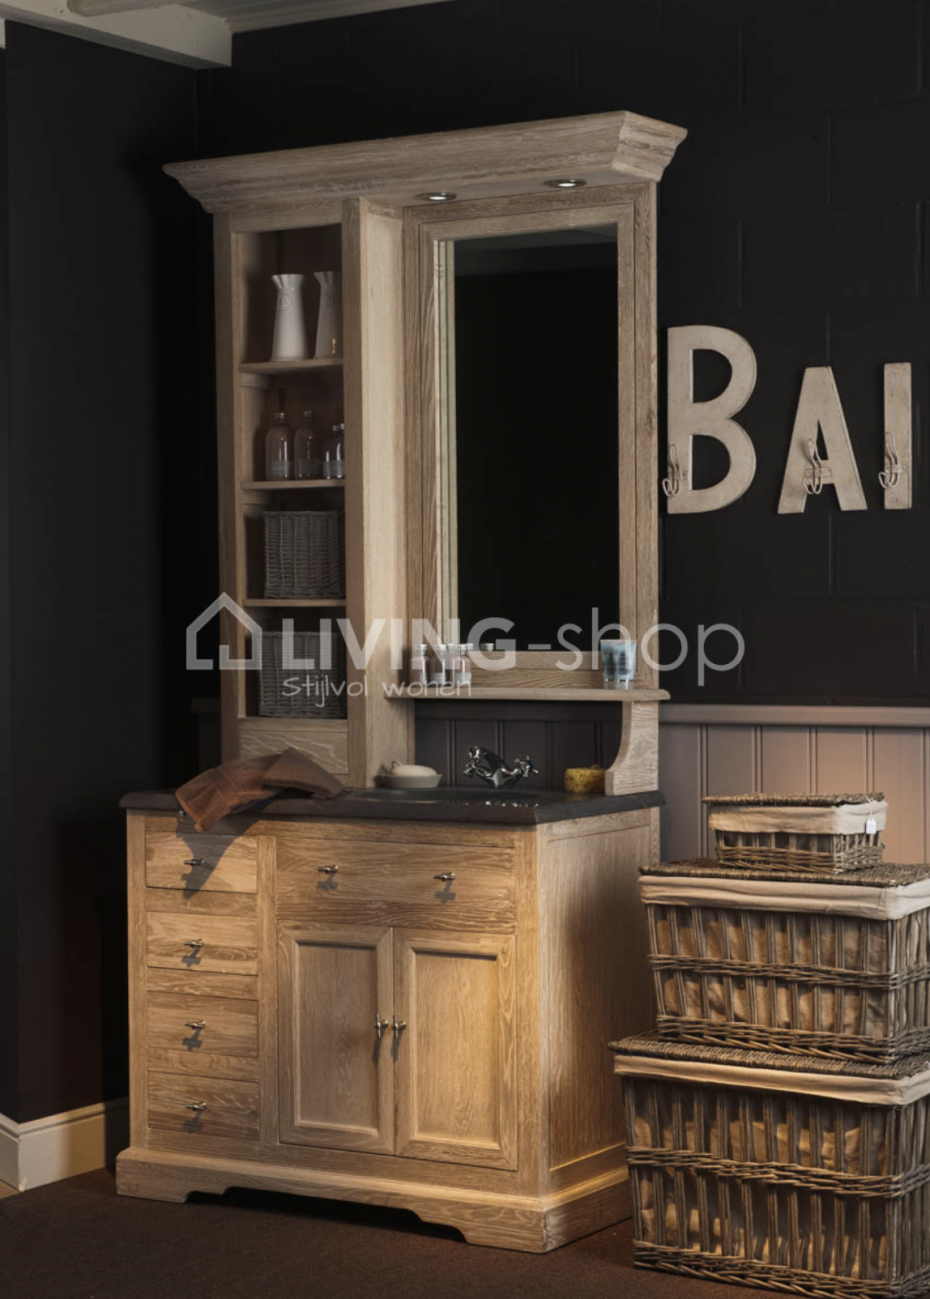 meuble de salle de bain en ch ne rustique avec armoire. Black Bedroom Furniture Sets. Home Design Ideas